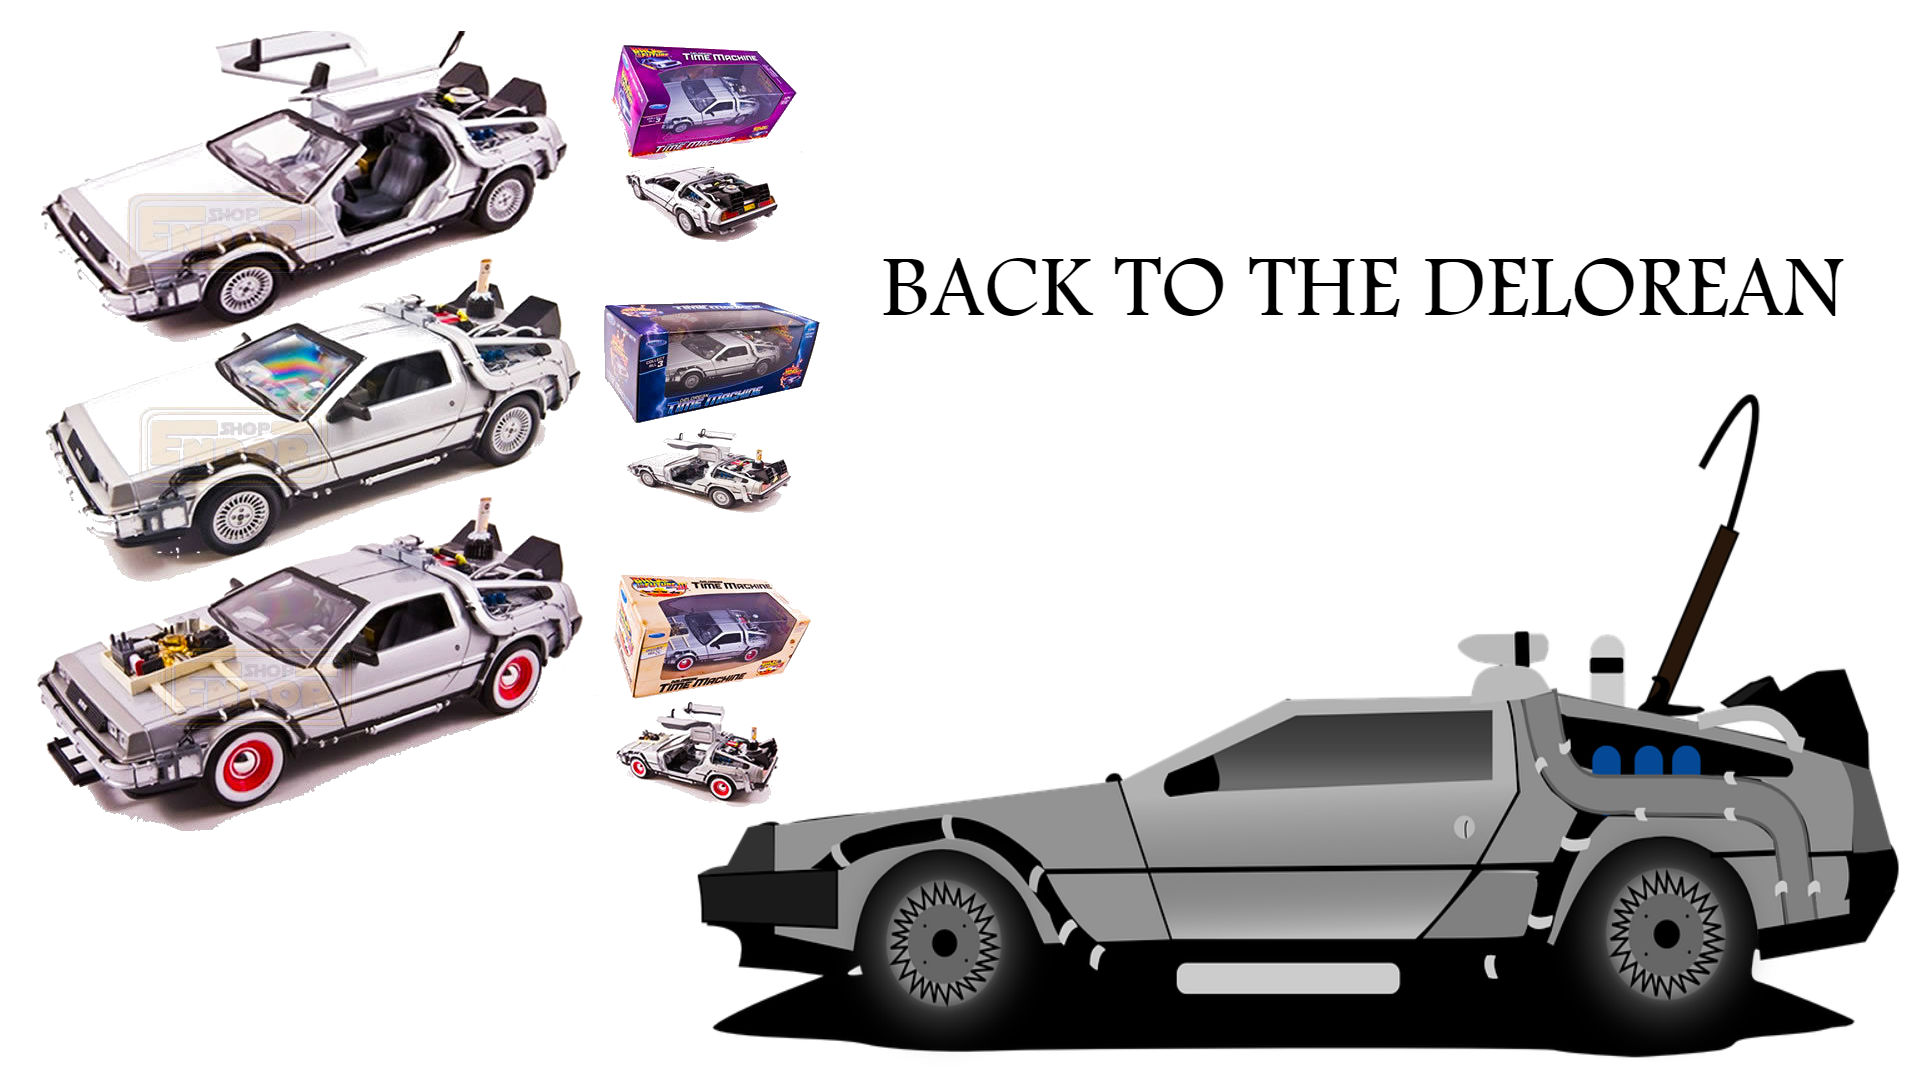 delorean_final.jpg